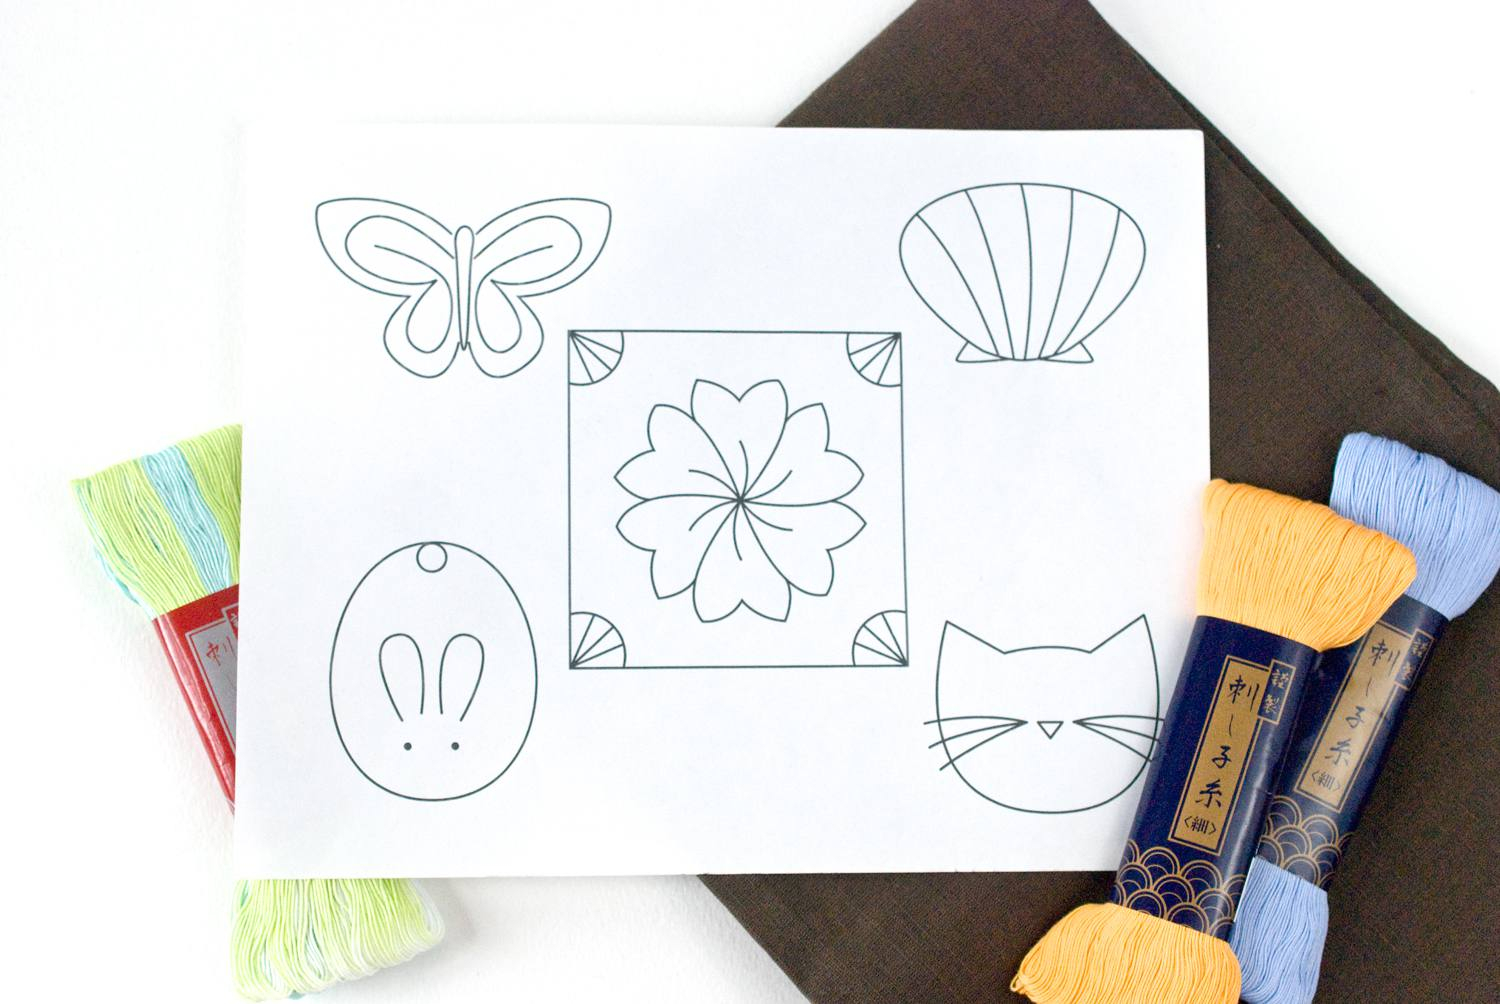 Paper Embroidery Cards Free Patterns Simple Single Patterns For Sashiko Embroidery